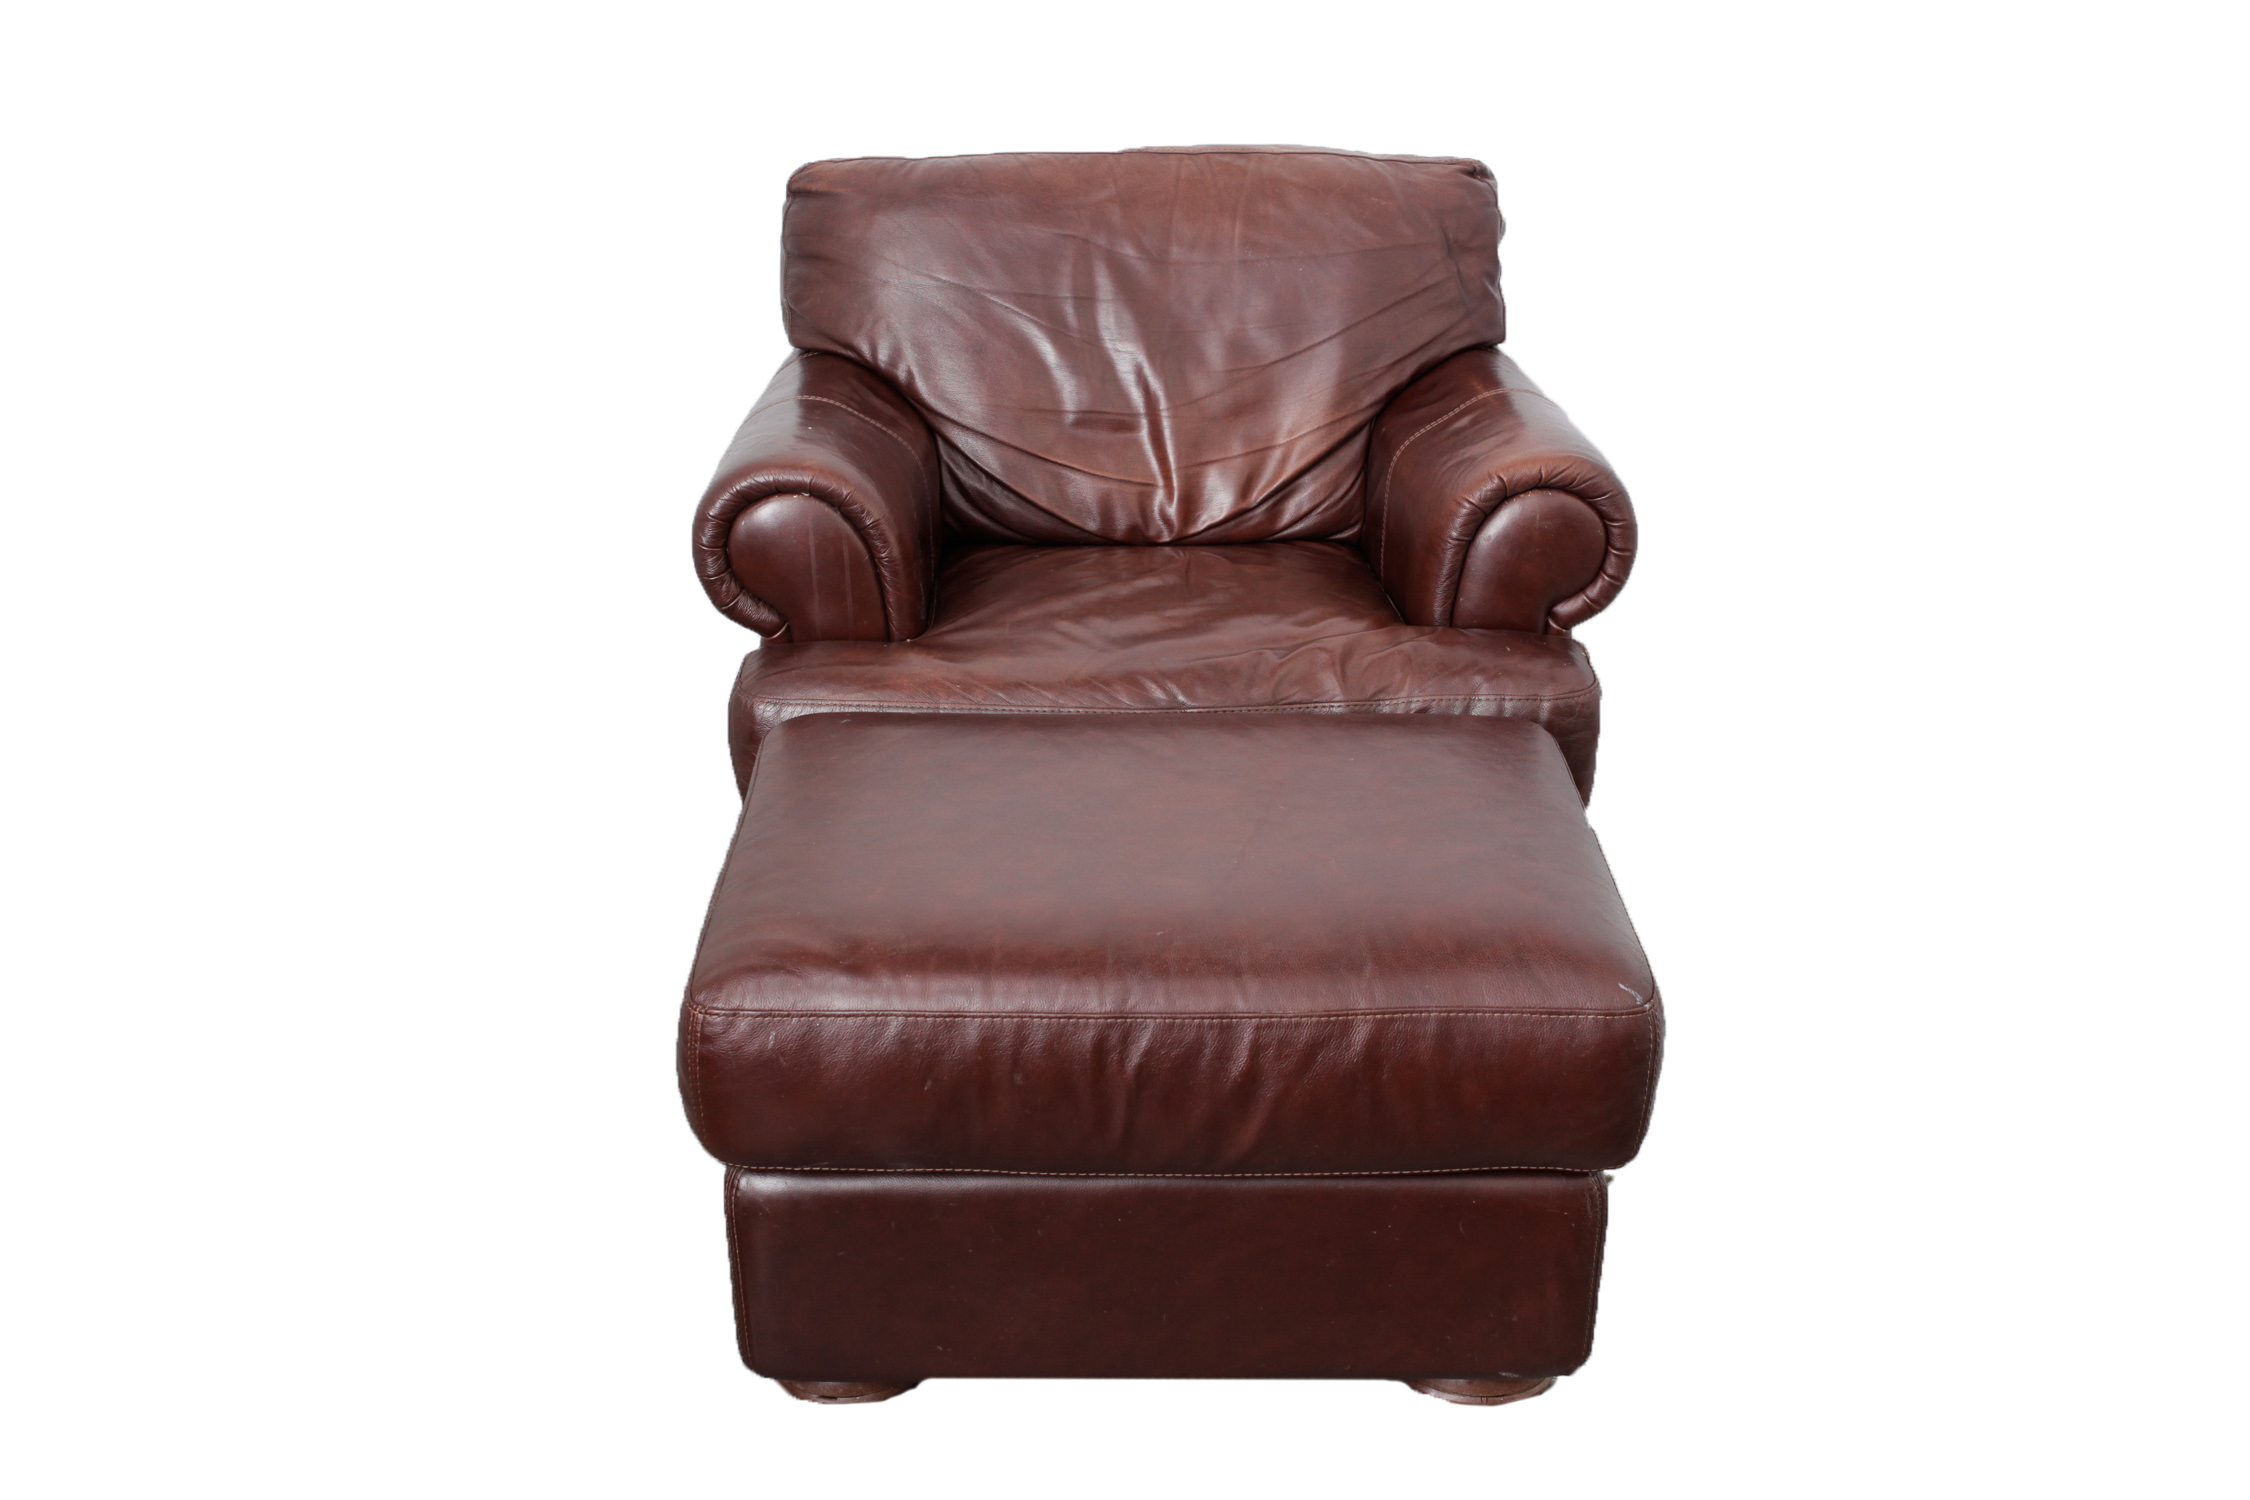 Over-sized Brown Leather Armchair u0026 Ottoman : EBTH